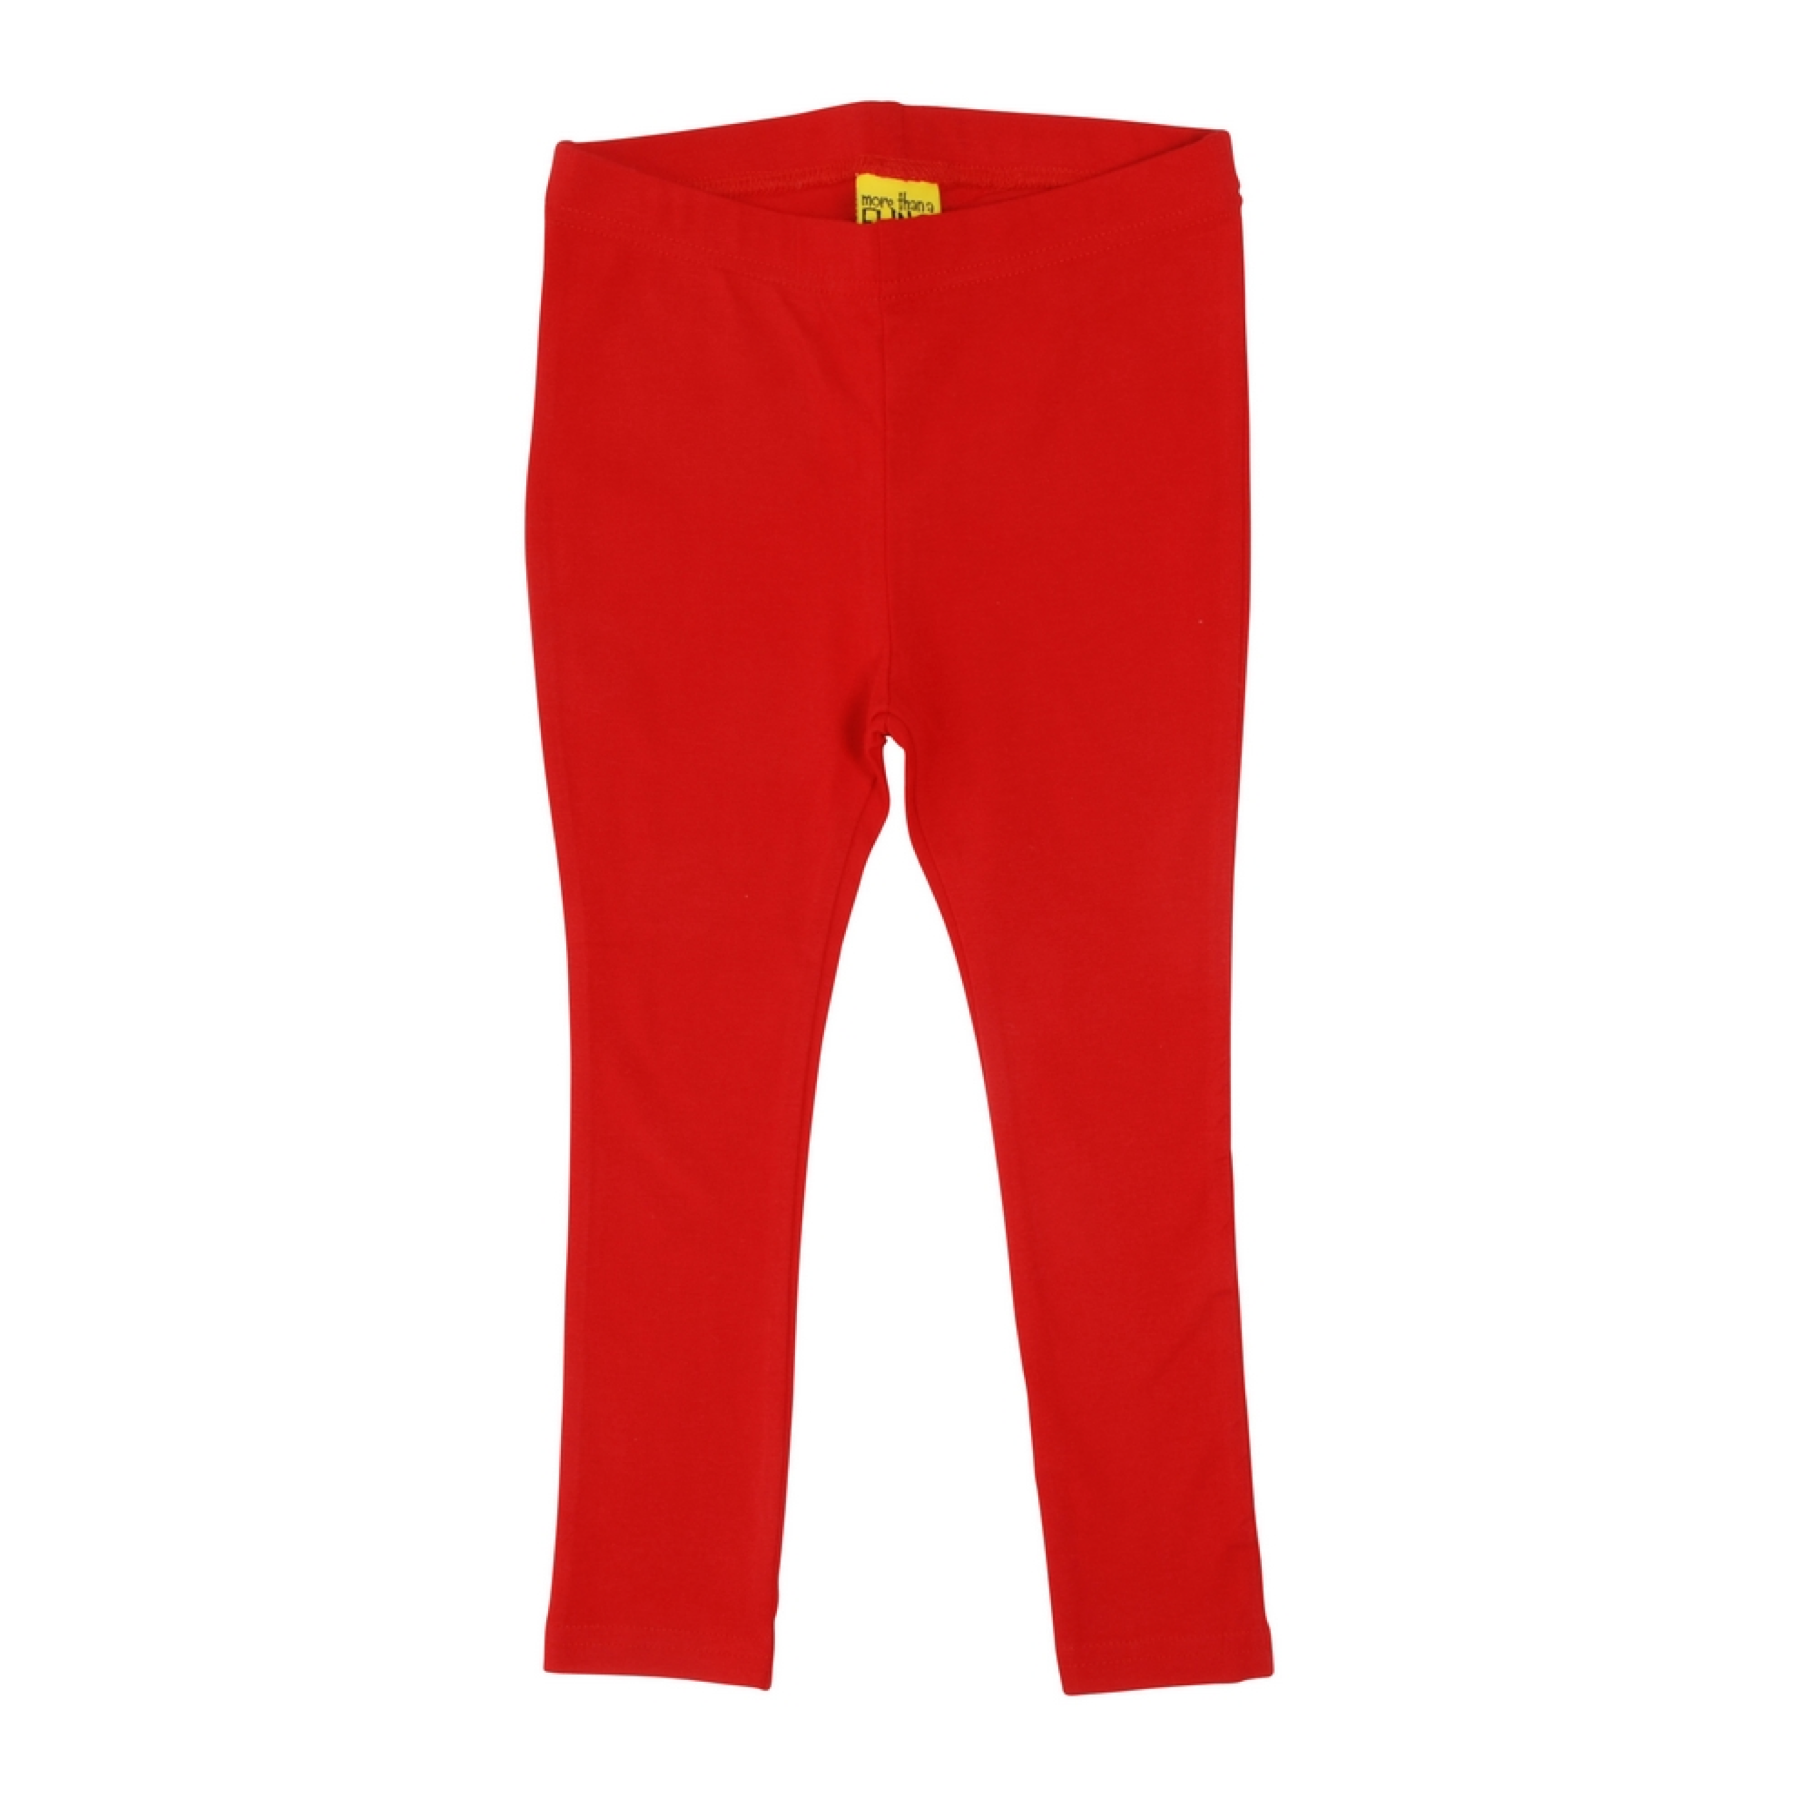 DUNS Sweden MTAF Leggings Red